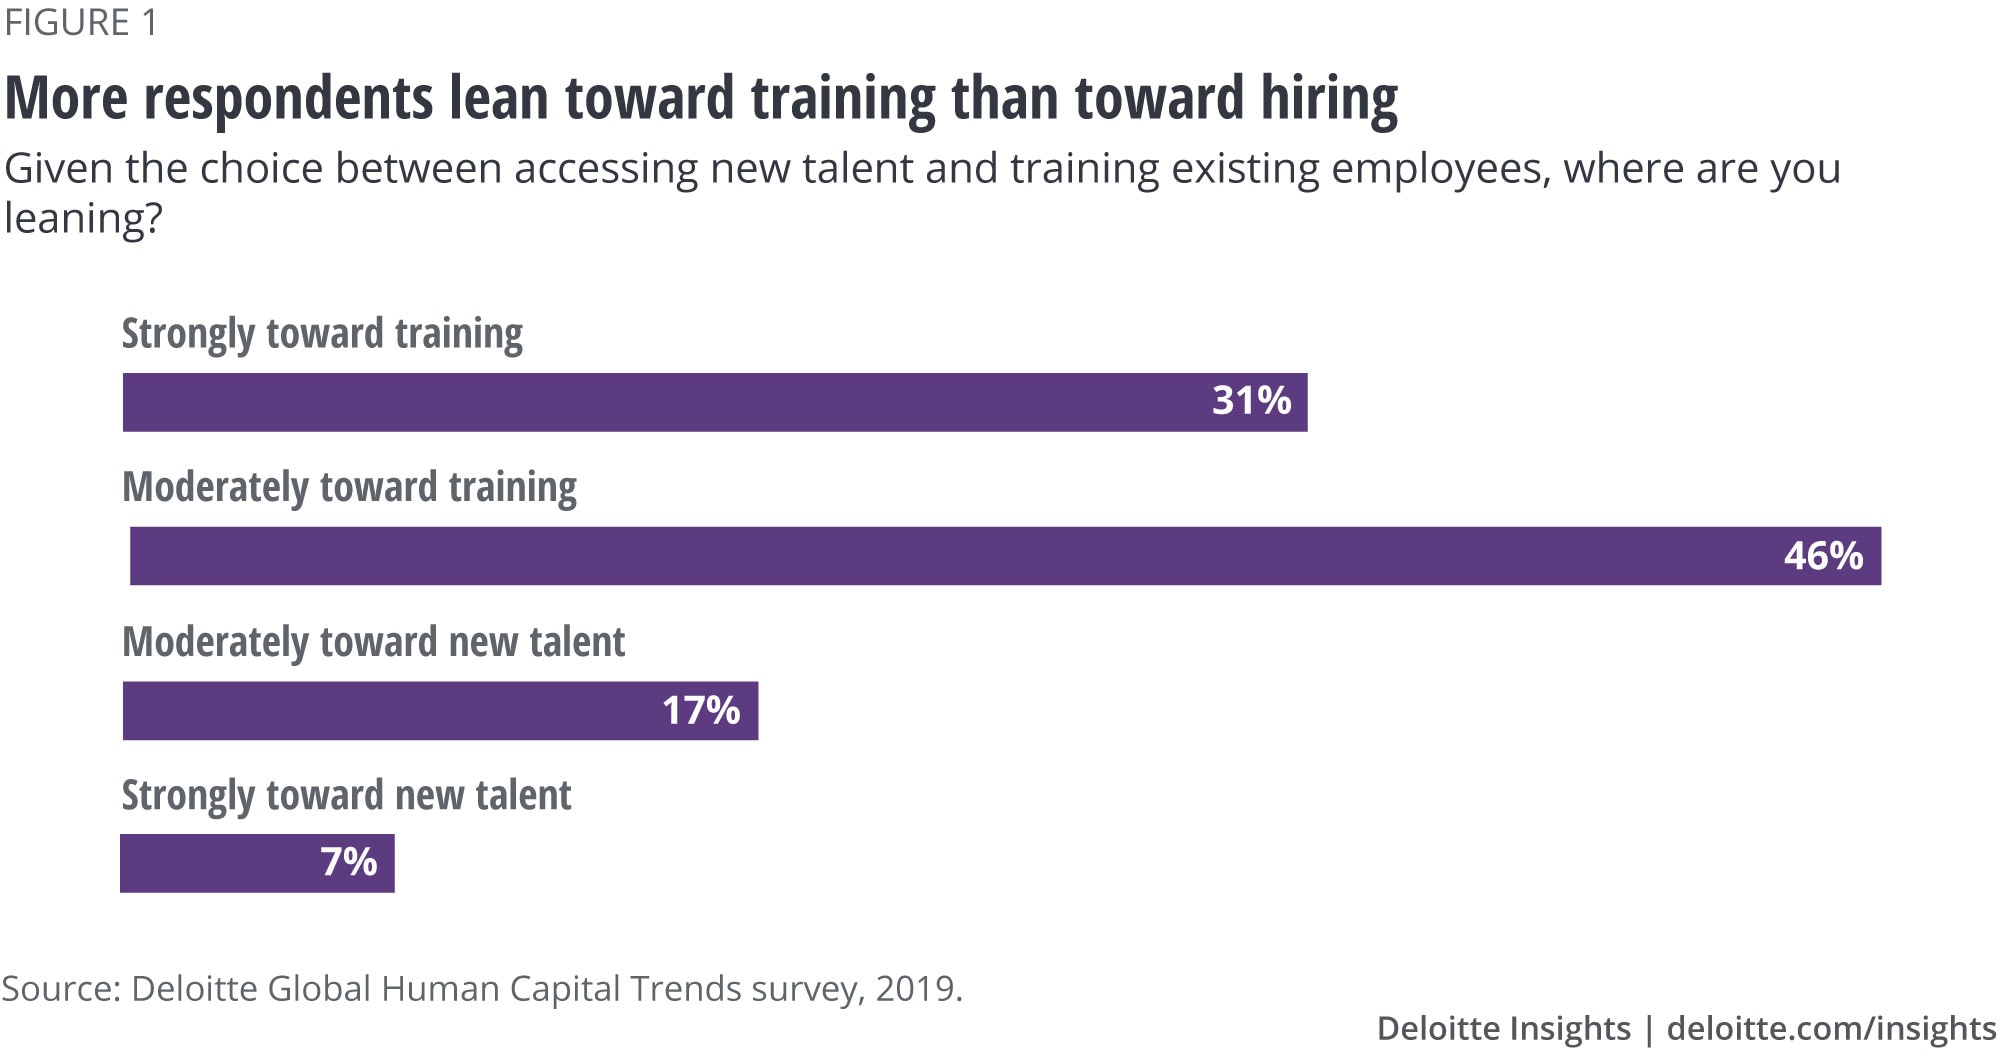 More respondents lean toward training than toward hiring